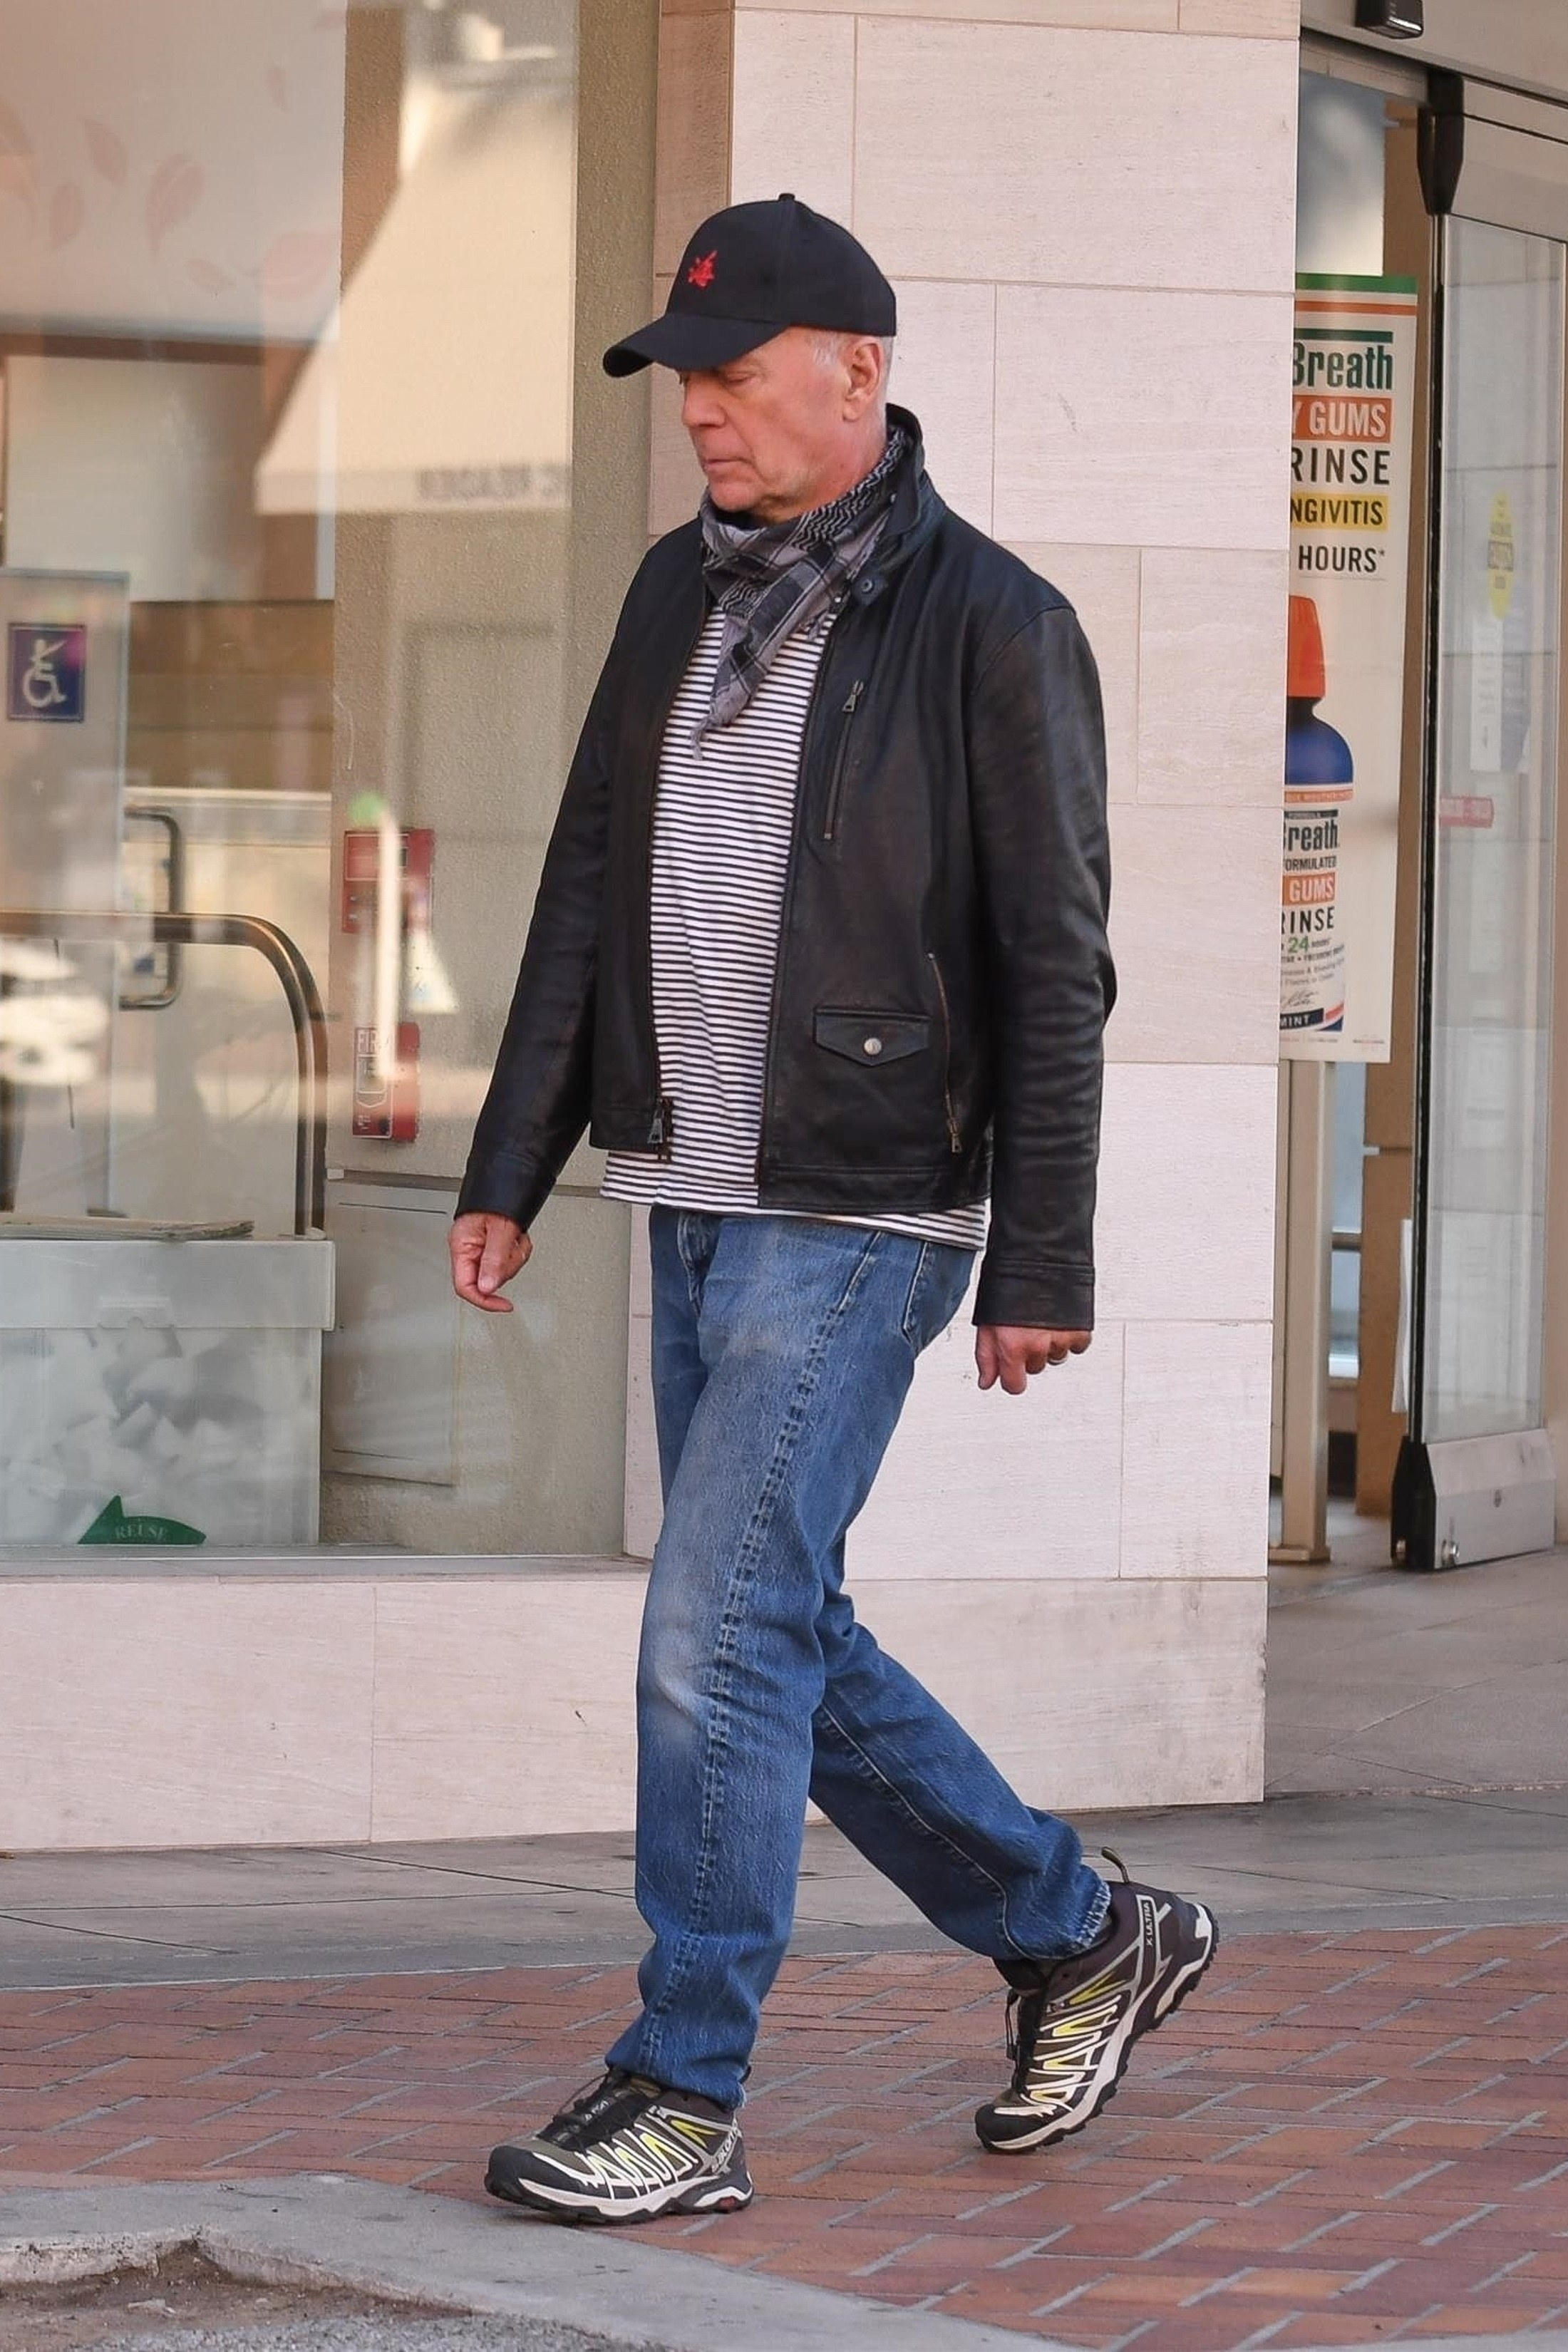 Bruce Willis is spotted walking away from a store without wearing a mask